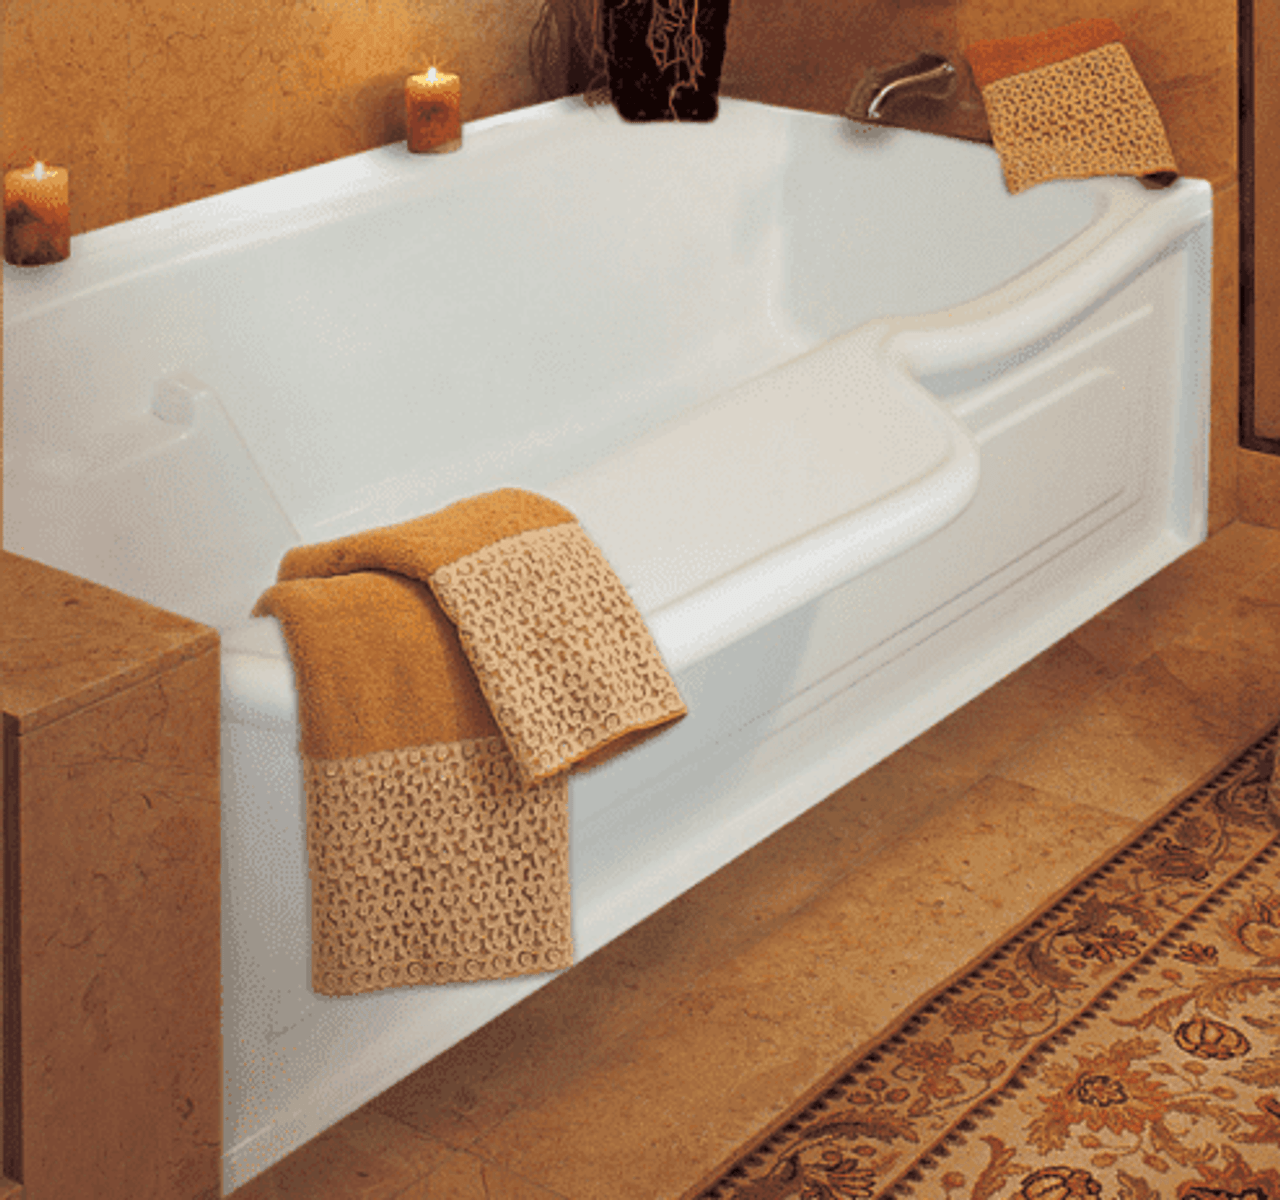 Newedge Bathtub Bathtub With Seat Built In The Edge